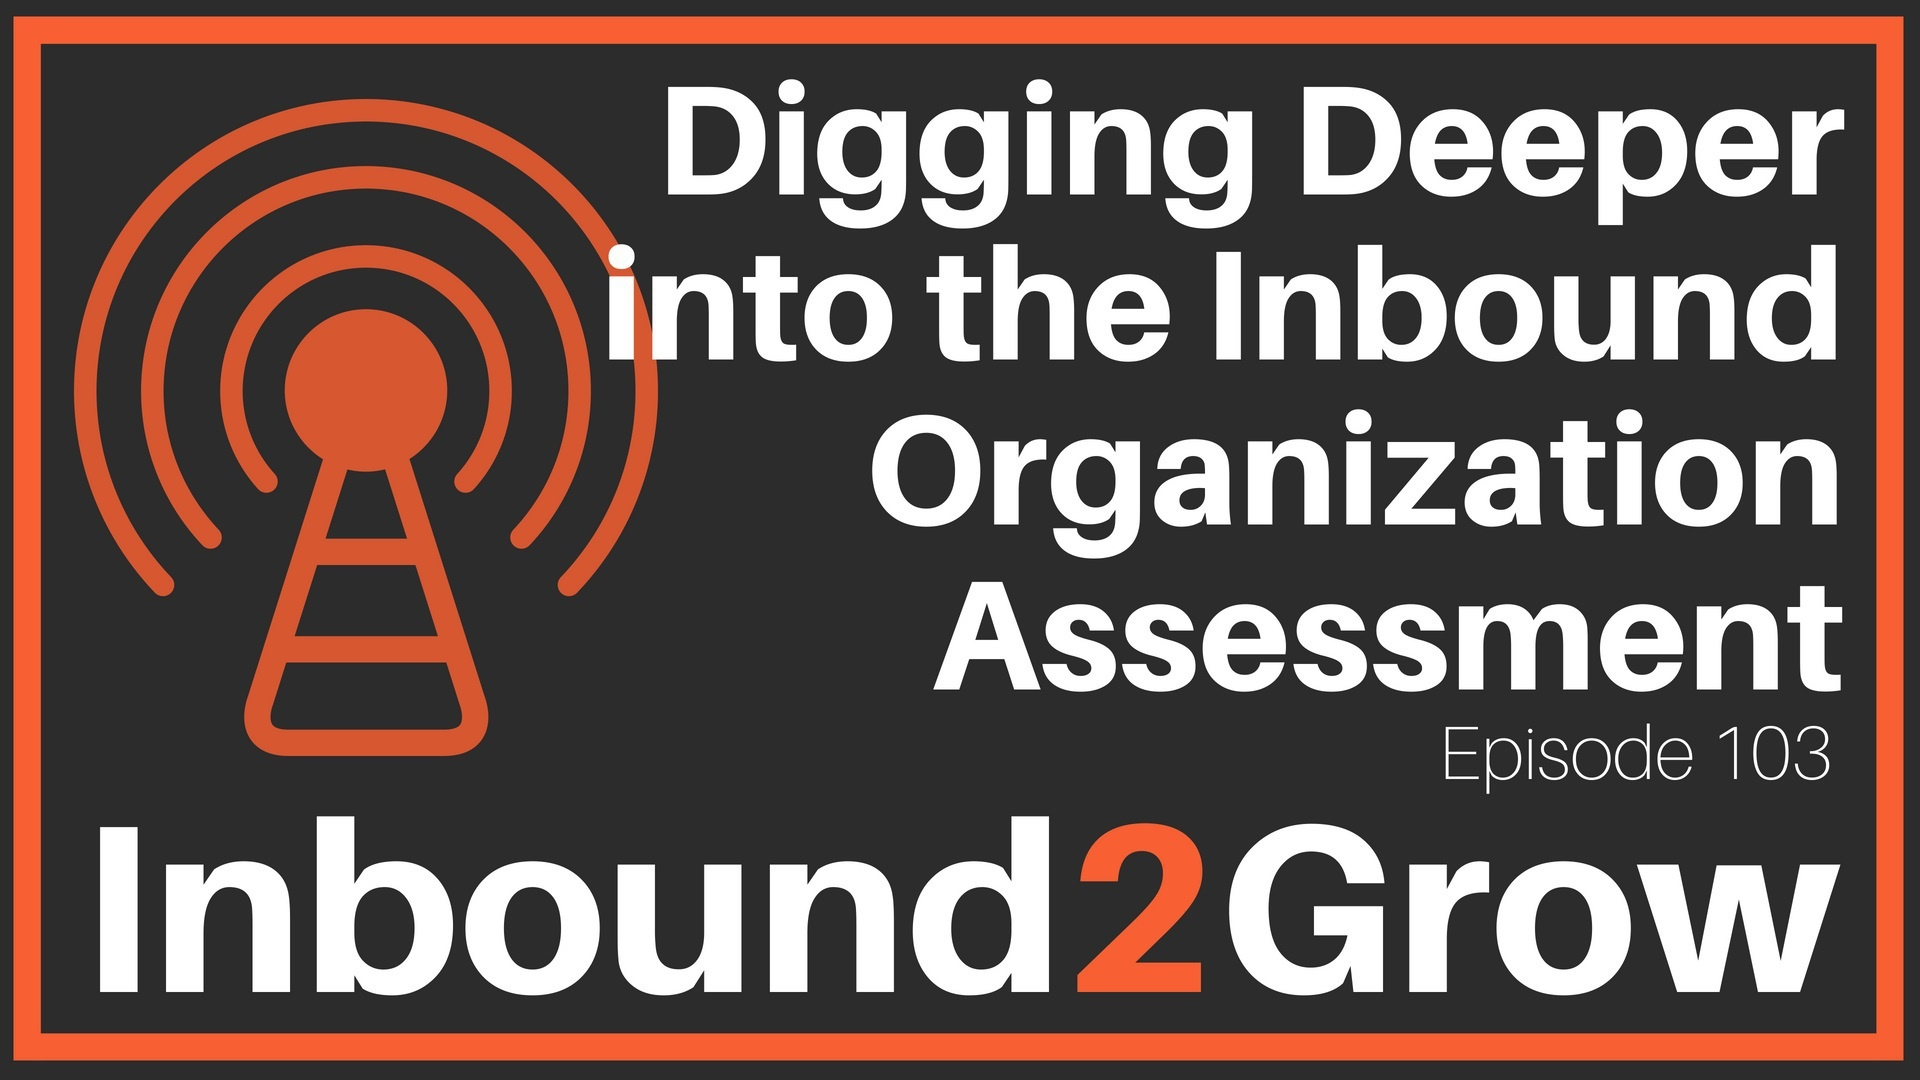 Inbound2Grow Episode 103: Digging Deeper into the Inbound Organization Assessment